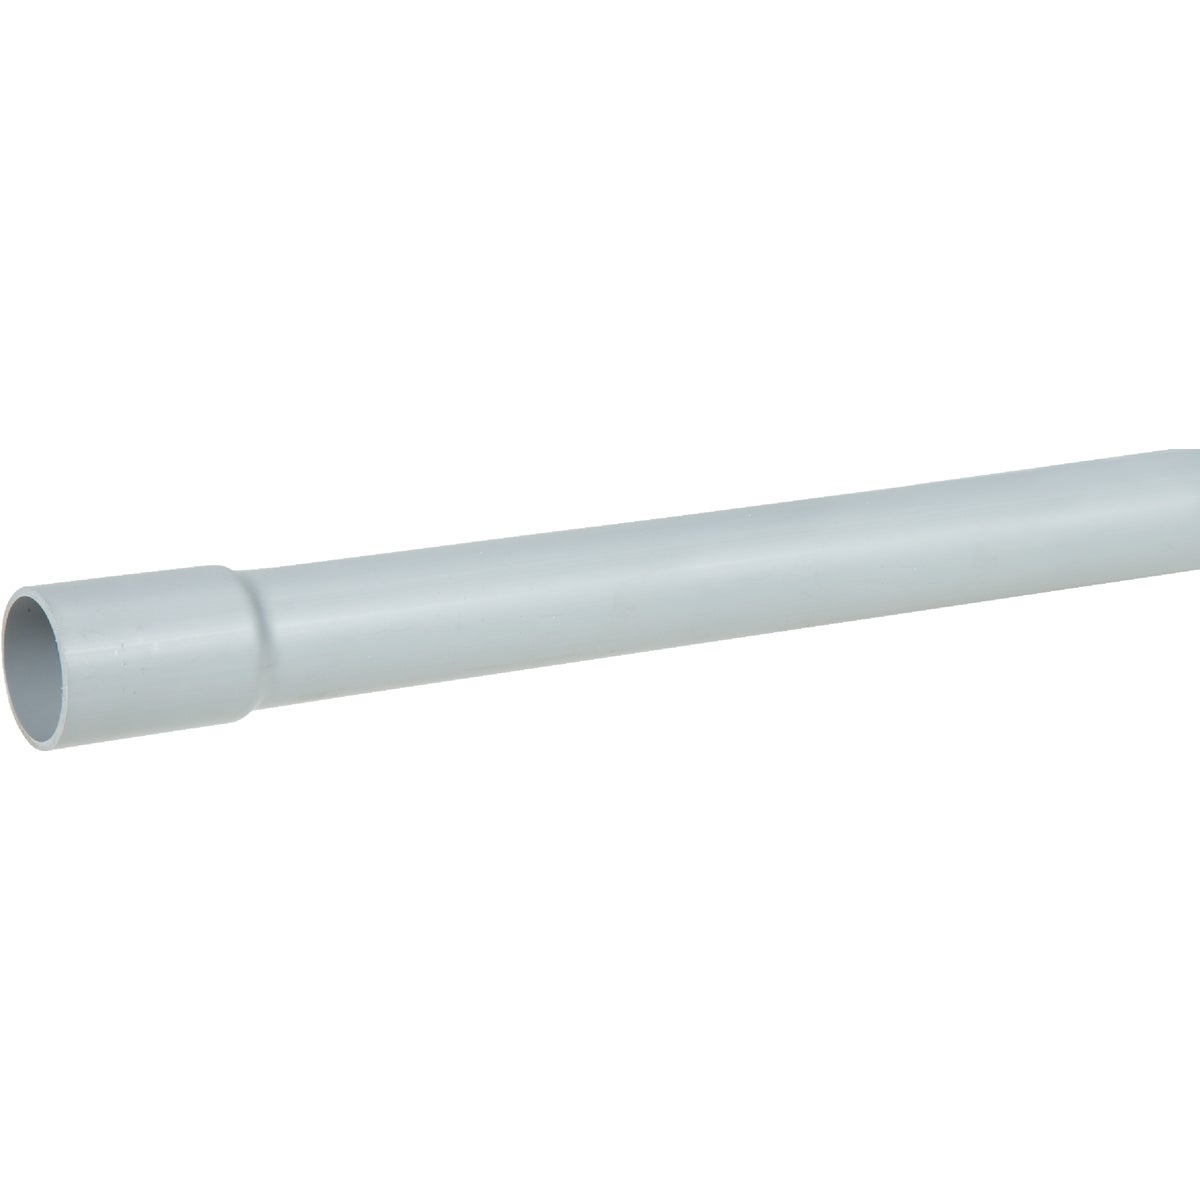 "1-1/2"" SCH80 10' CONDUIT - 49410-010 by Prime Conduit"